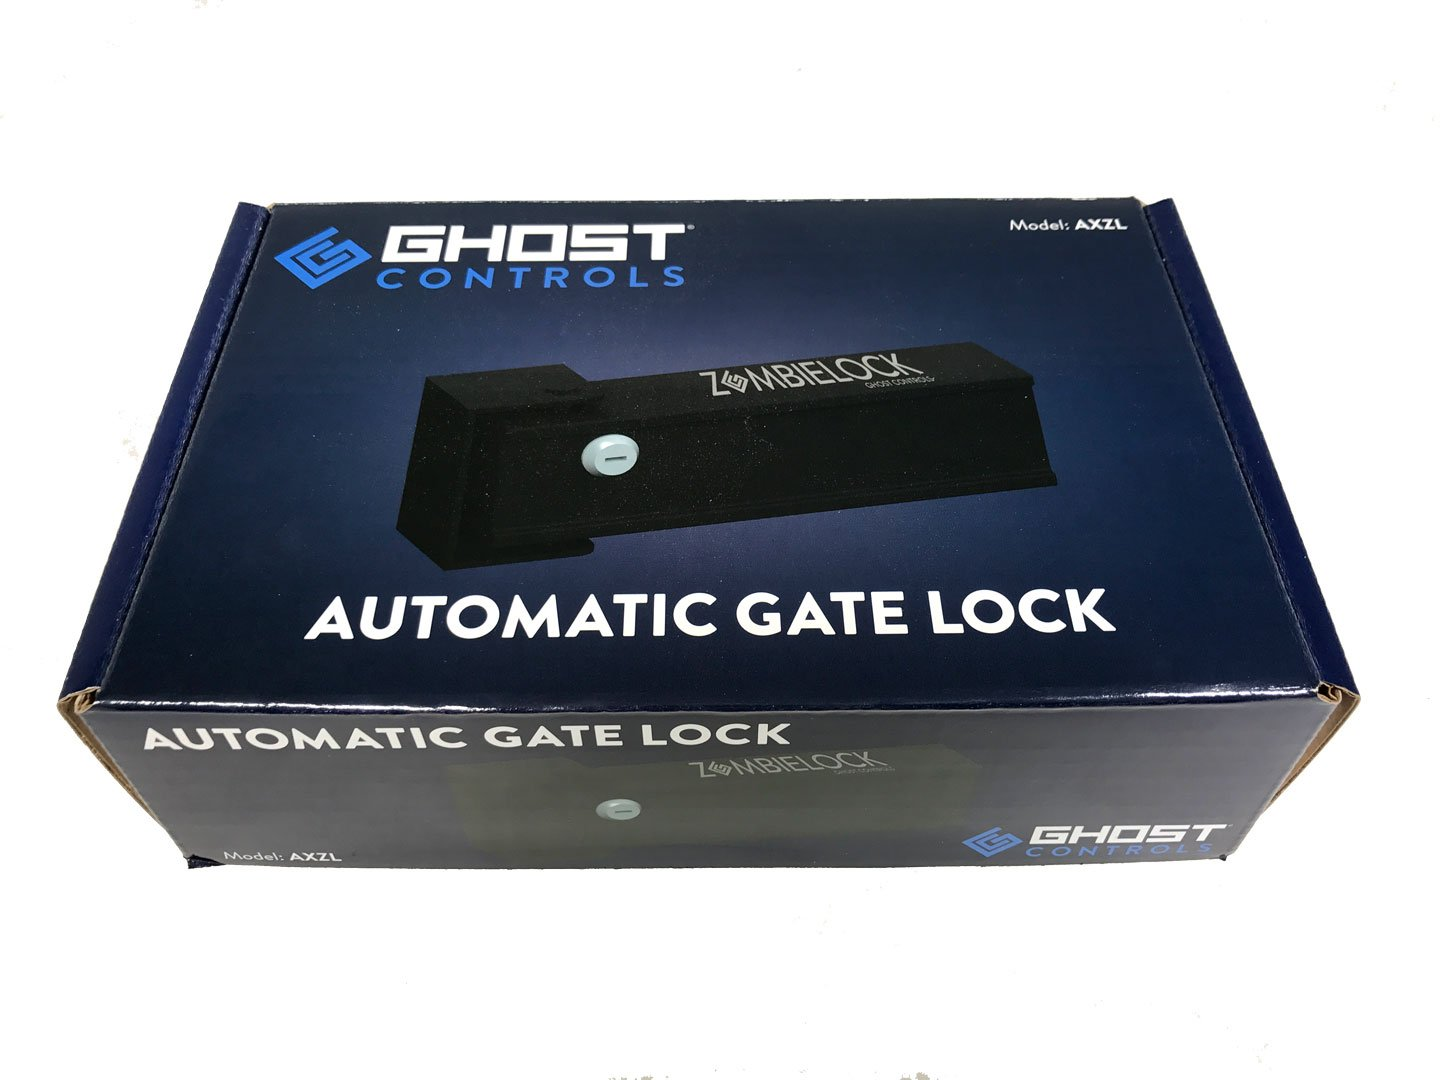 Ghost Controls AXZL ZombieLock Automatic Gate Lock for Automatic Gate Openers by GHOST CONTROLS (Image #1)